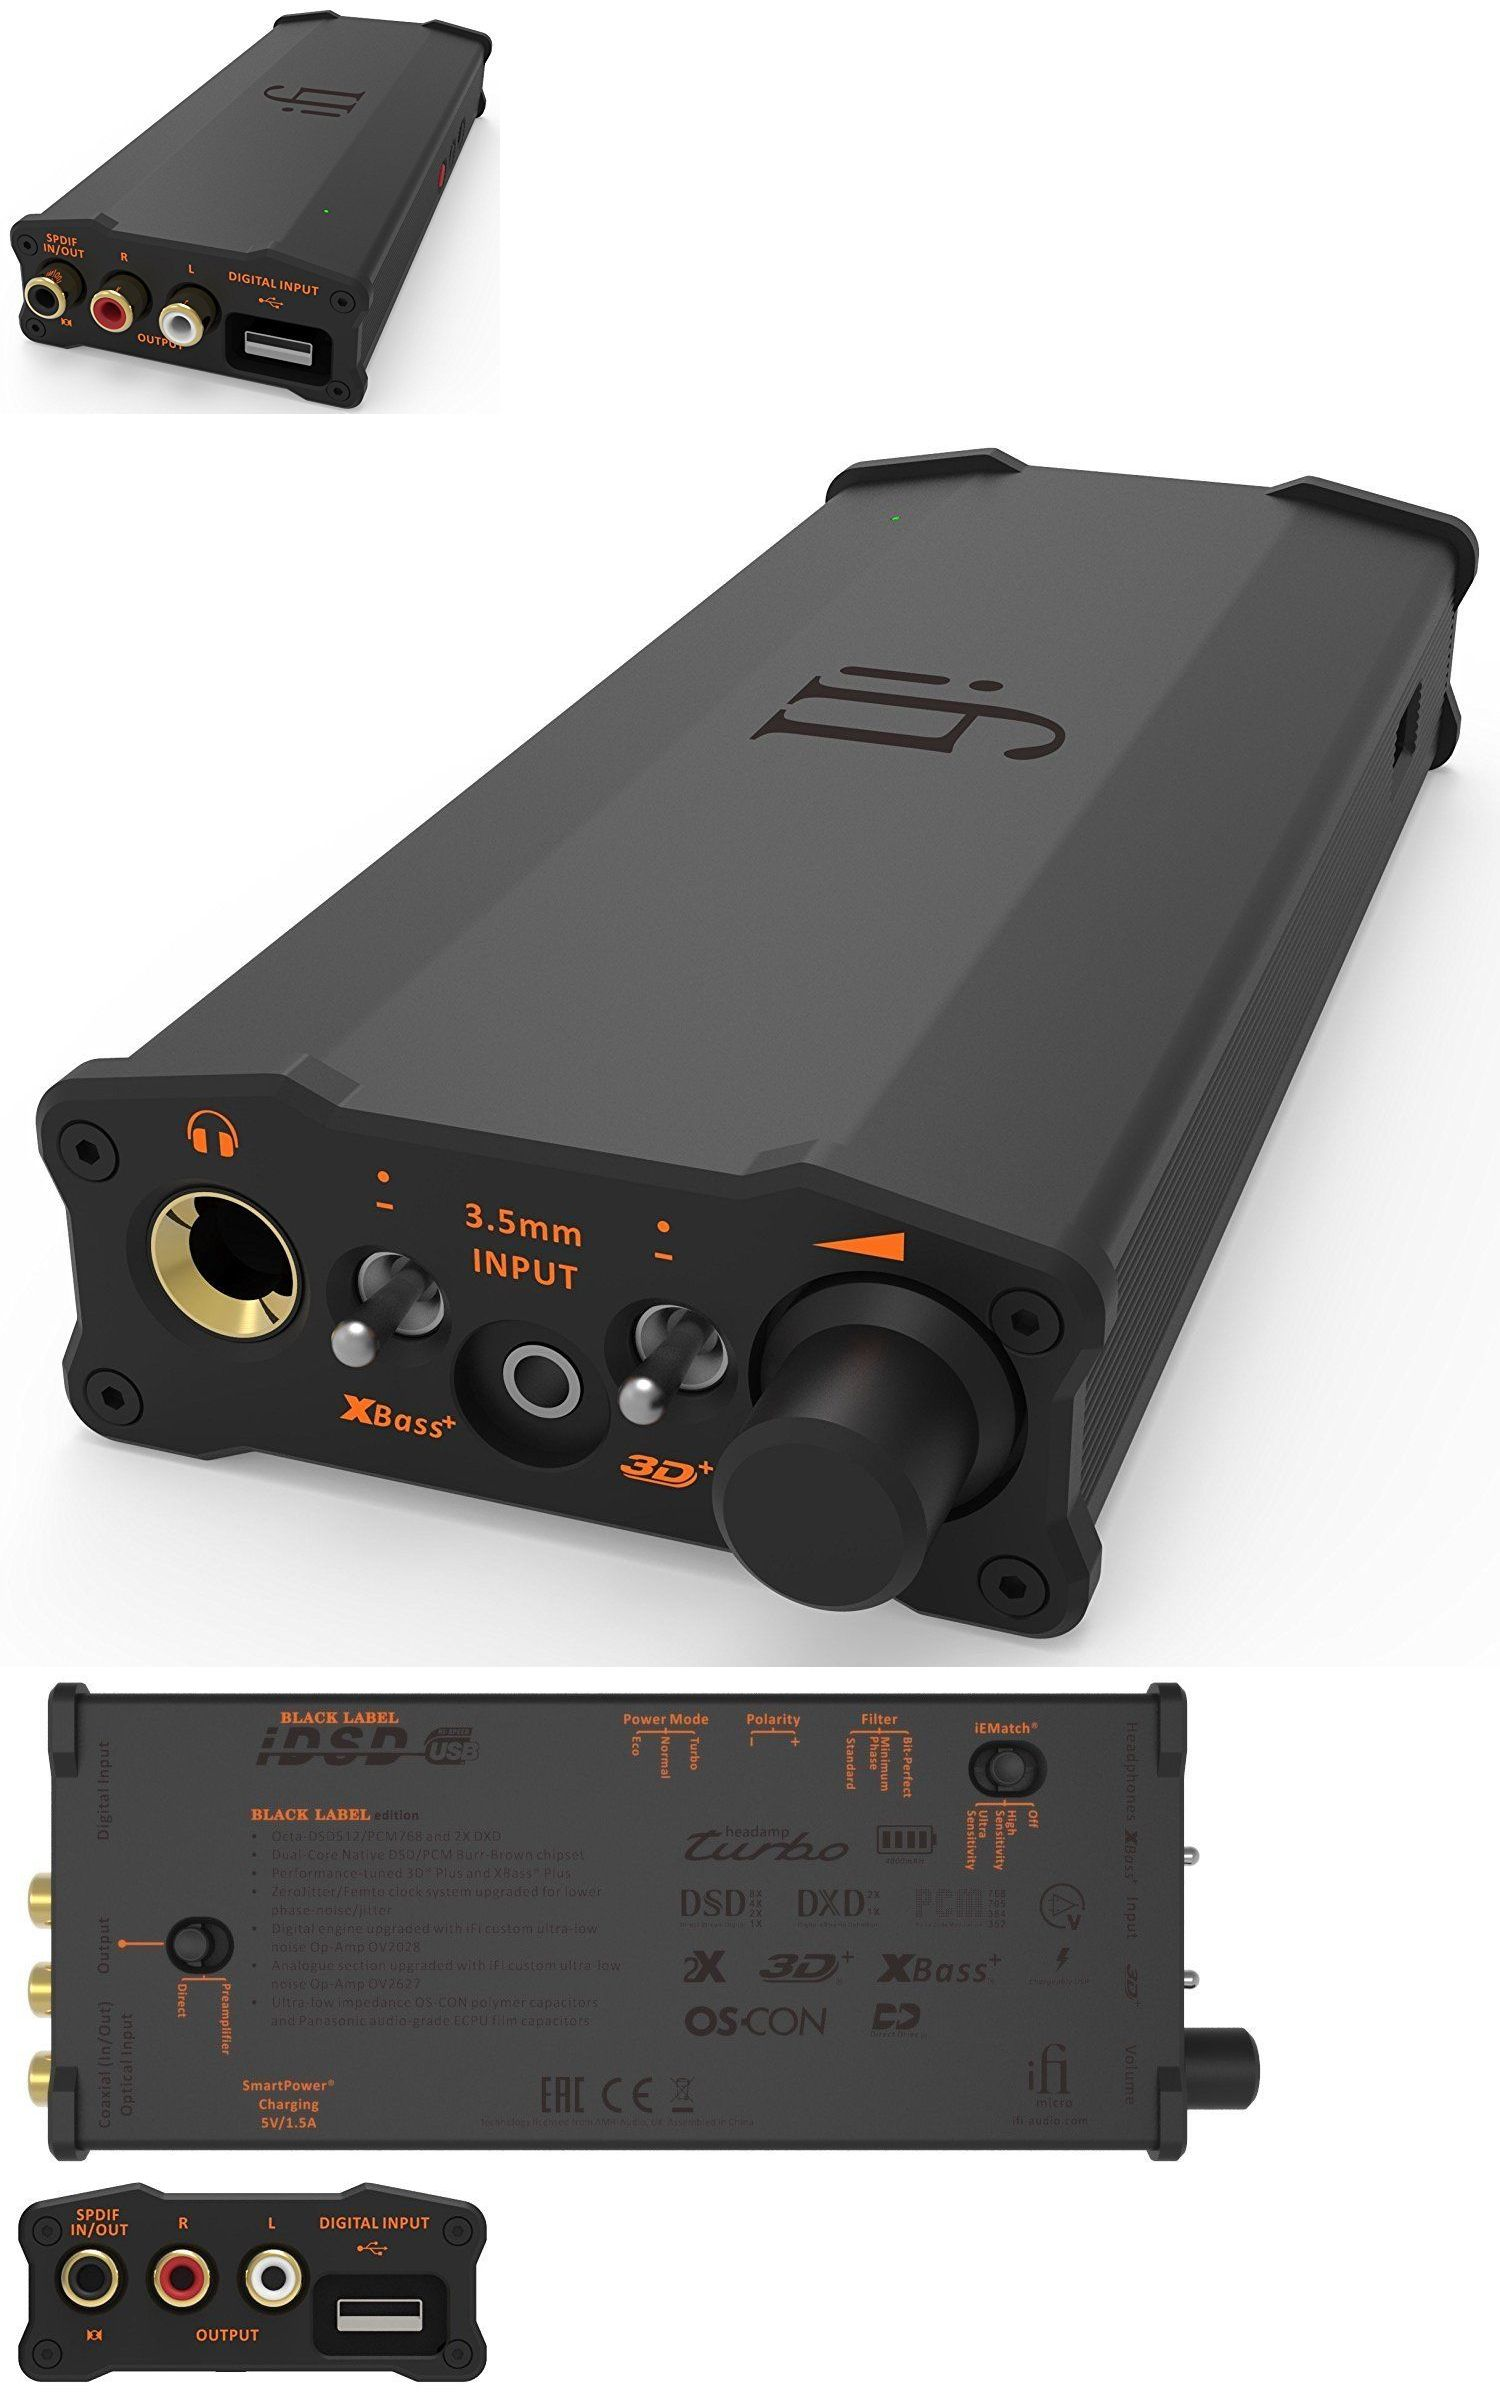 Stereo Component Combos New Ifi Micro Idsd Black Label Edition Usb Power Amplifier Compatible With Tv Audio Dac And Headphone